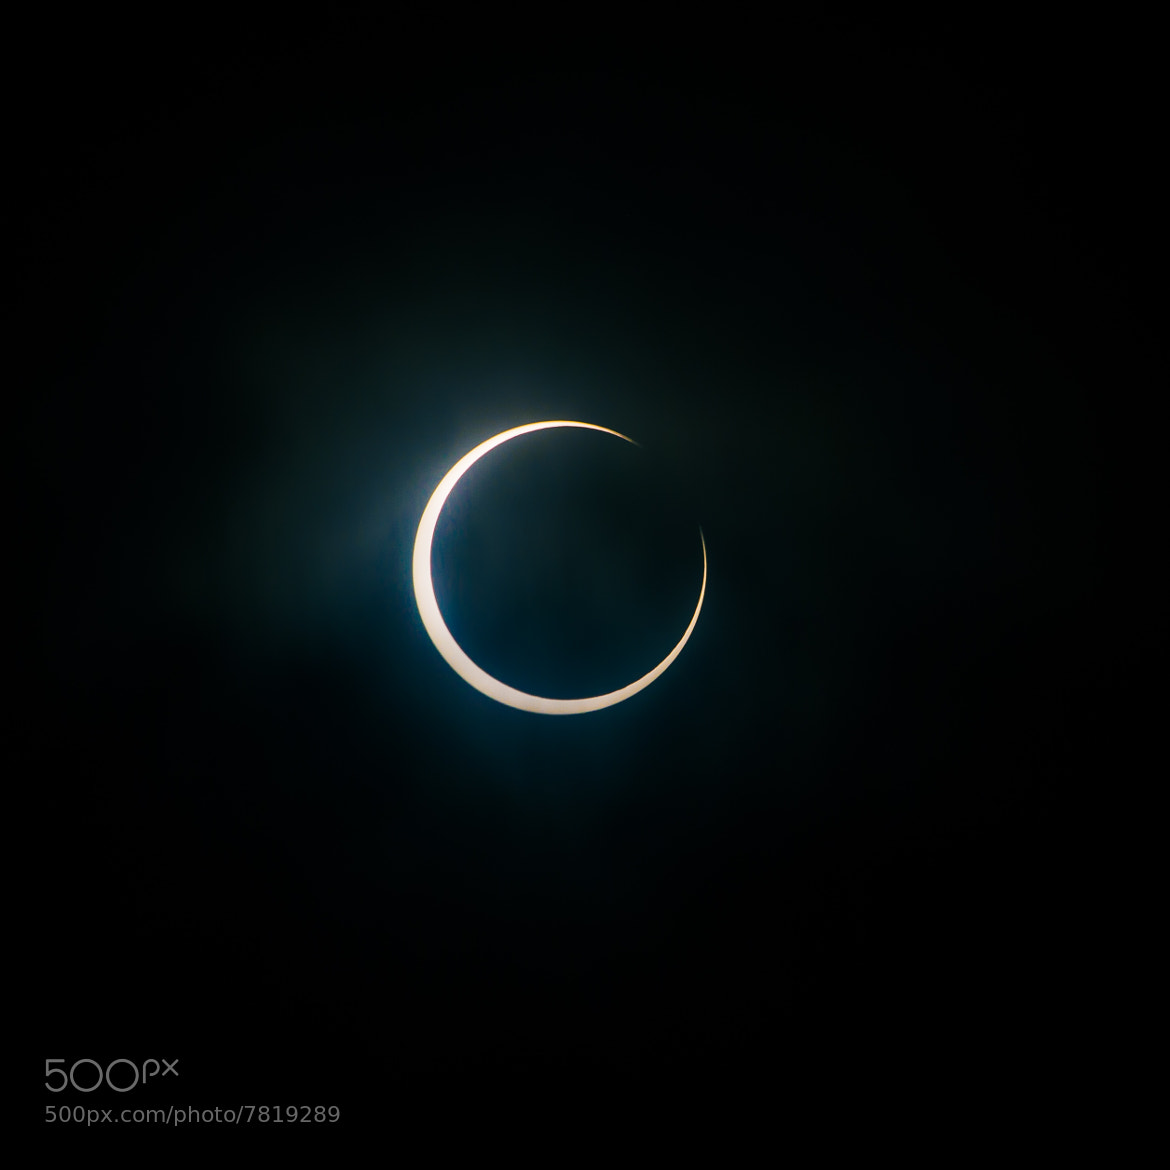 Photograph eclipse by lenslet on 500px